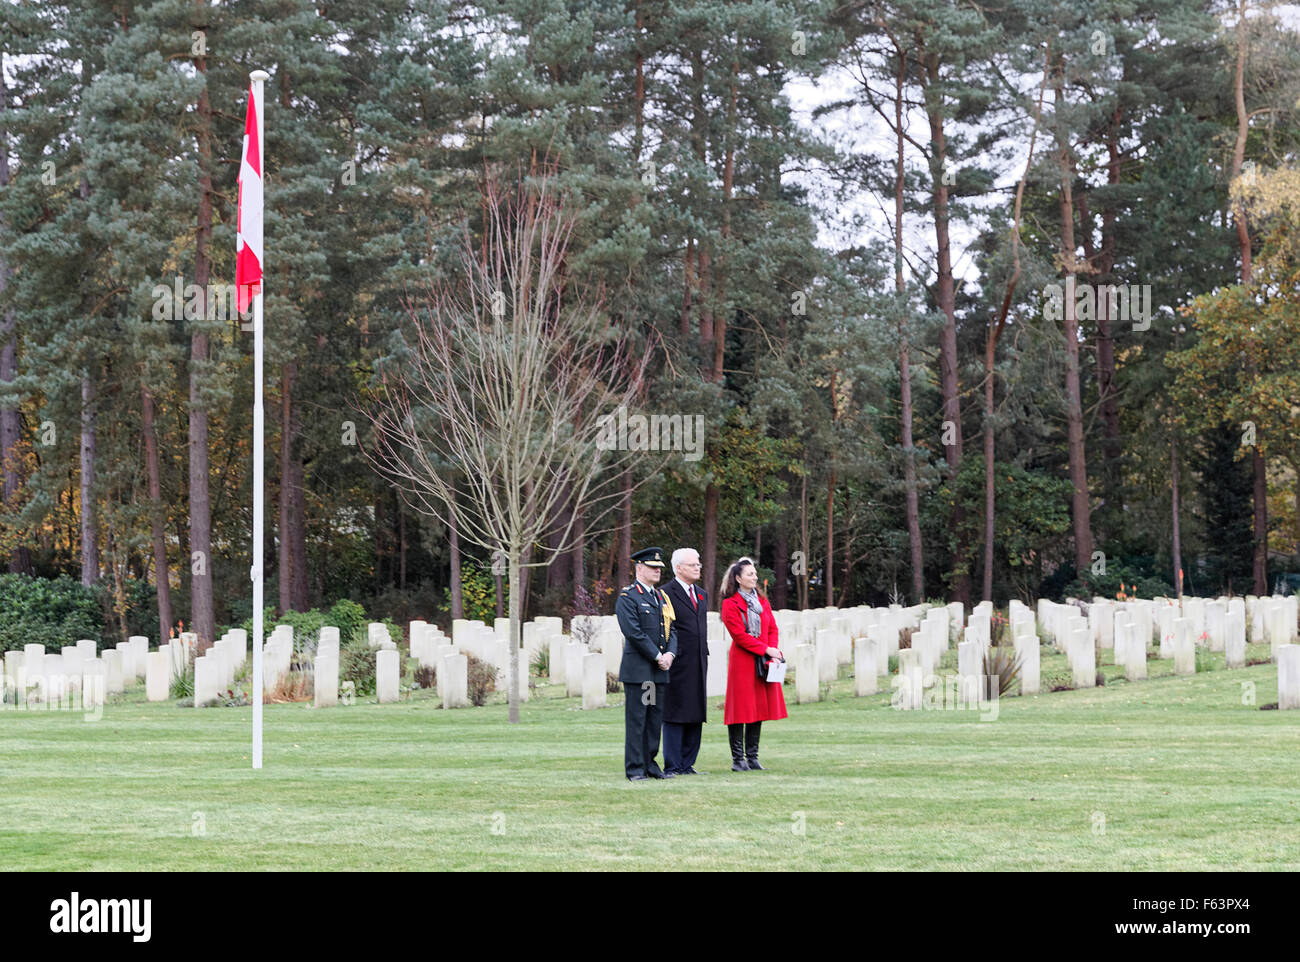 Canadian Section Brookwood Military Cemetery Armistice Day Ceremony: Canadian High Commissioner at center. - Stock Image